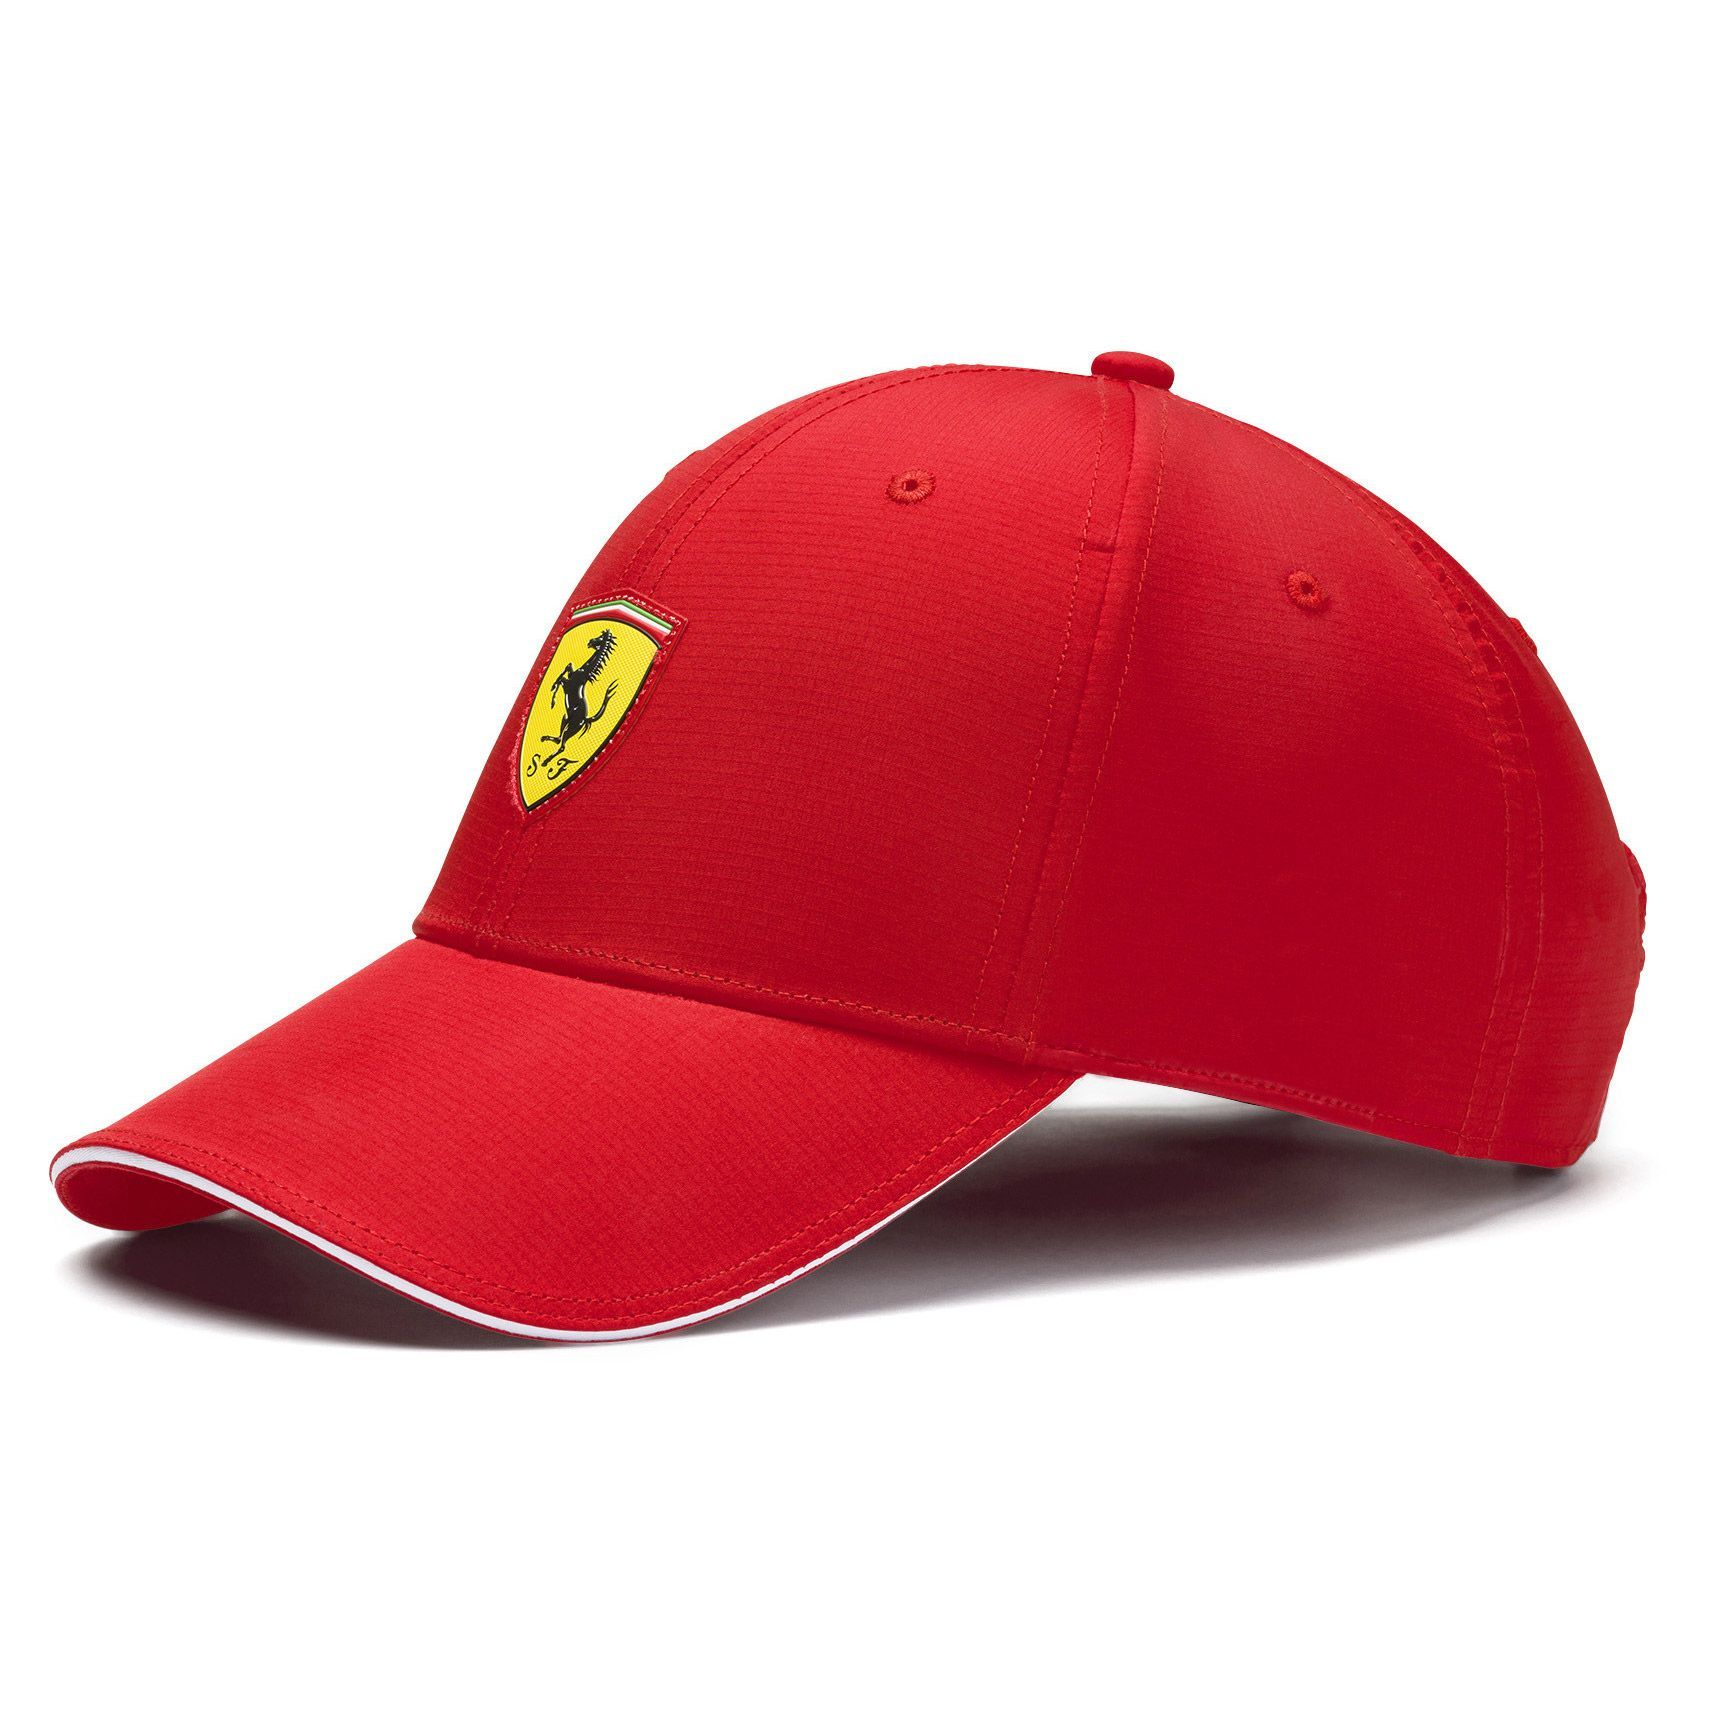 d8935a5ed0a discount lyst puma red bull racing lifestyle hat in blue for men 3824c  2d3d8  get puma ferrari fan cap fanemotion 86a20 f2ba5